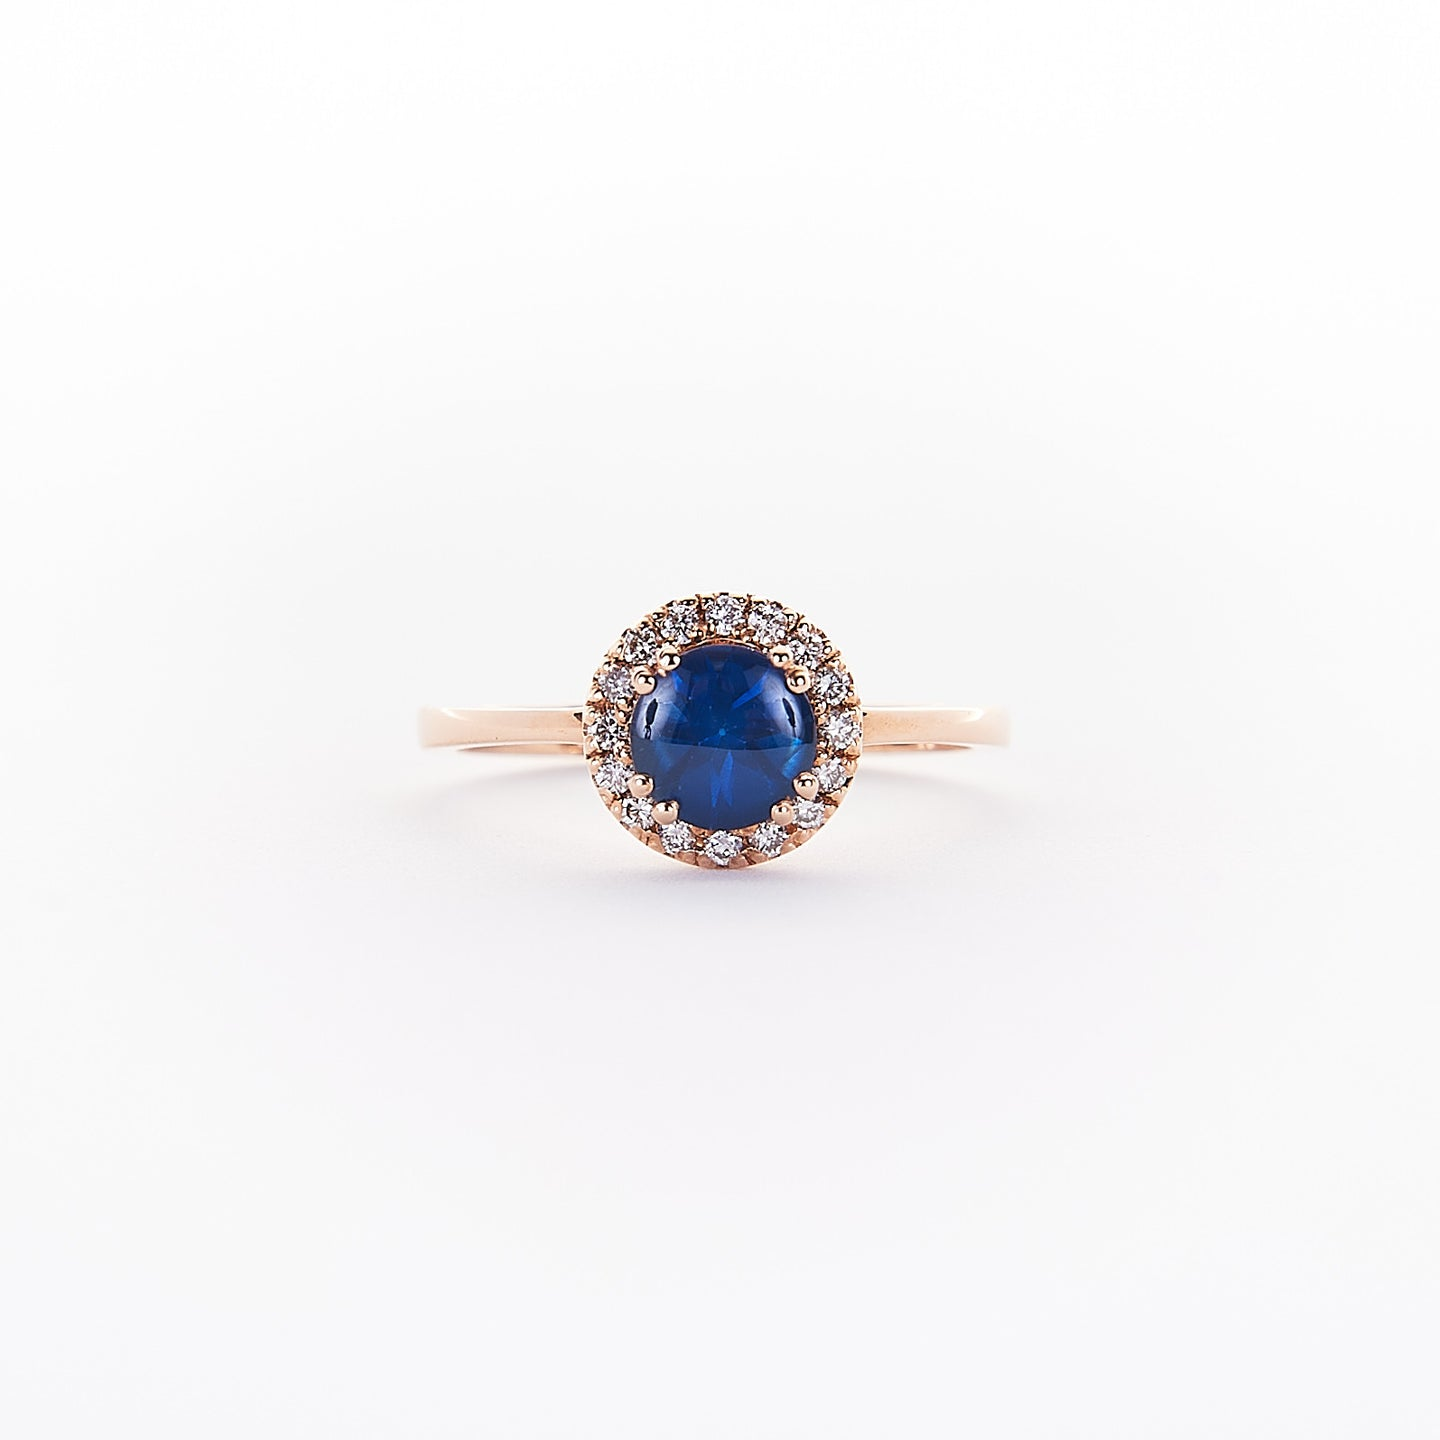 The Adora - 14K Rose Gold Cabouchan Blue Sapphire Ring